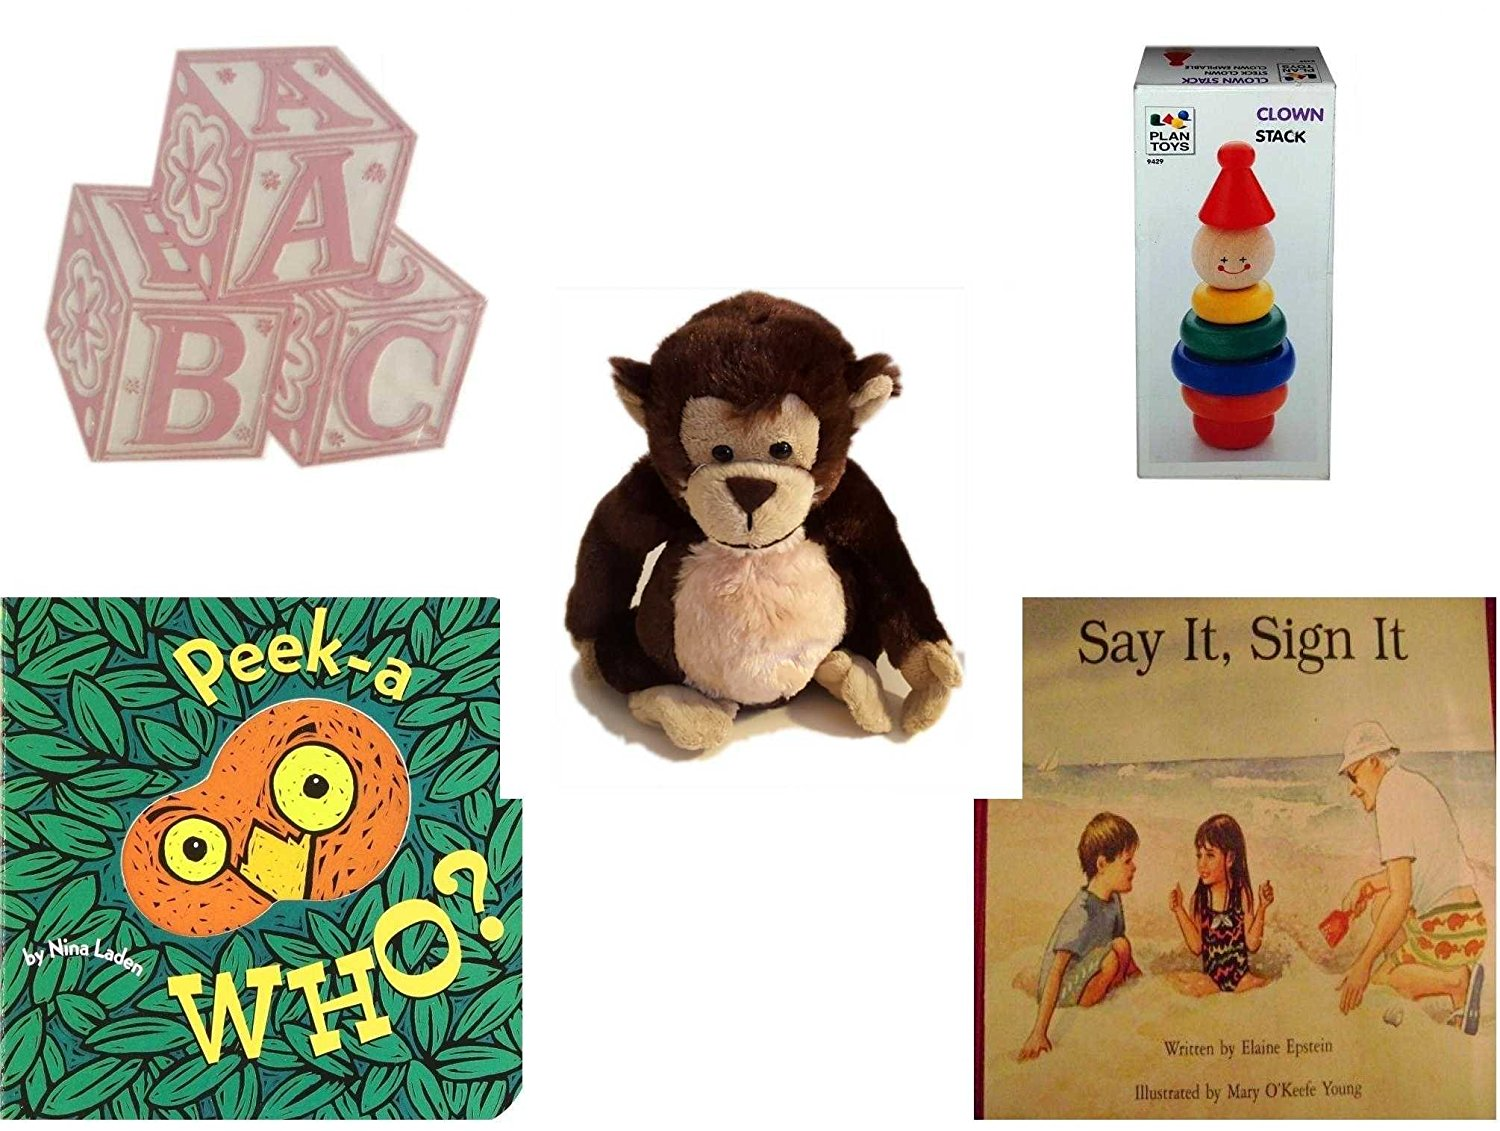 Children's Gift Bundle - Ages 0-2 [5 Piece] - ABC Baby Blocks Cake Topper Pink Girl - Clown Stack - Ganz Adorable Chimpanzee Plush - Peek-a-WHO? Board Book - Say It, Sign It